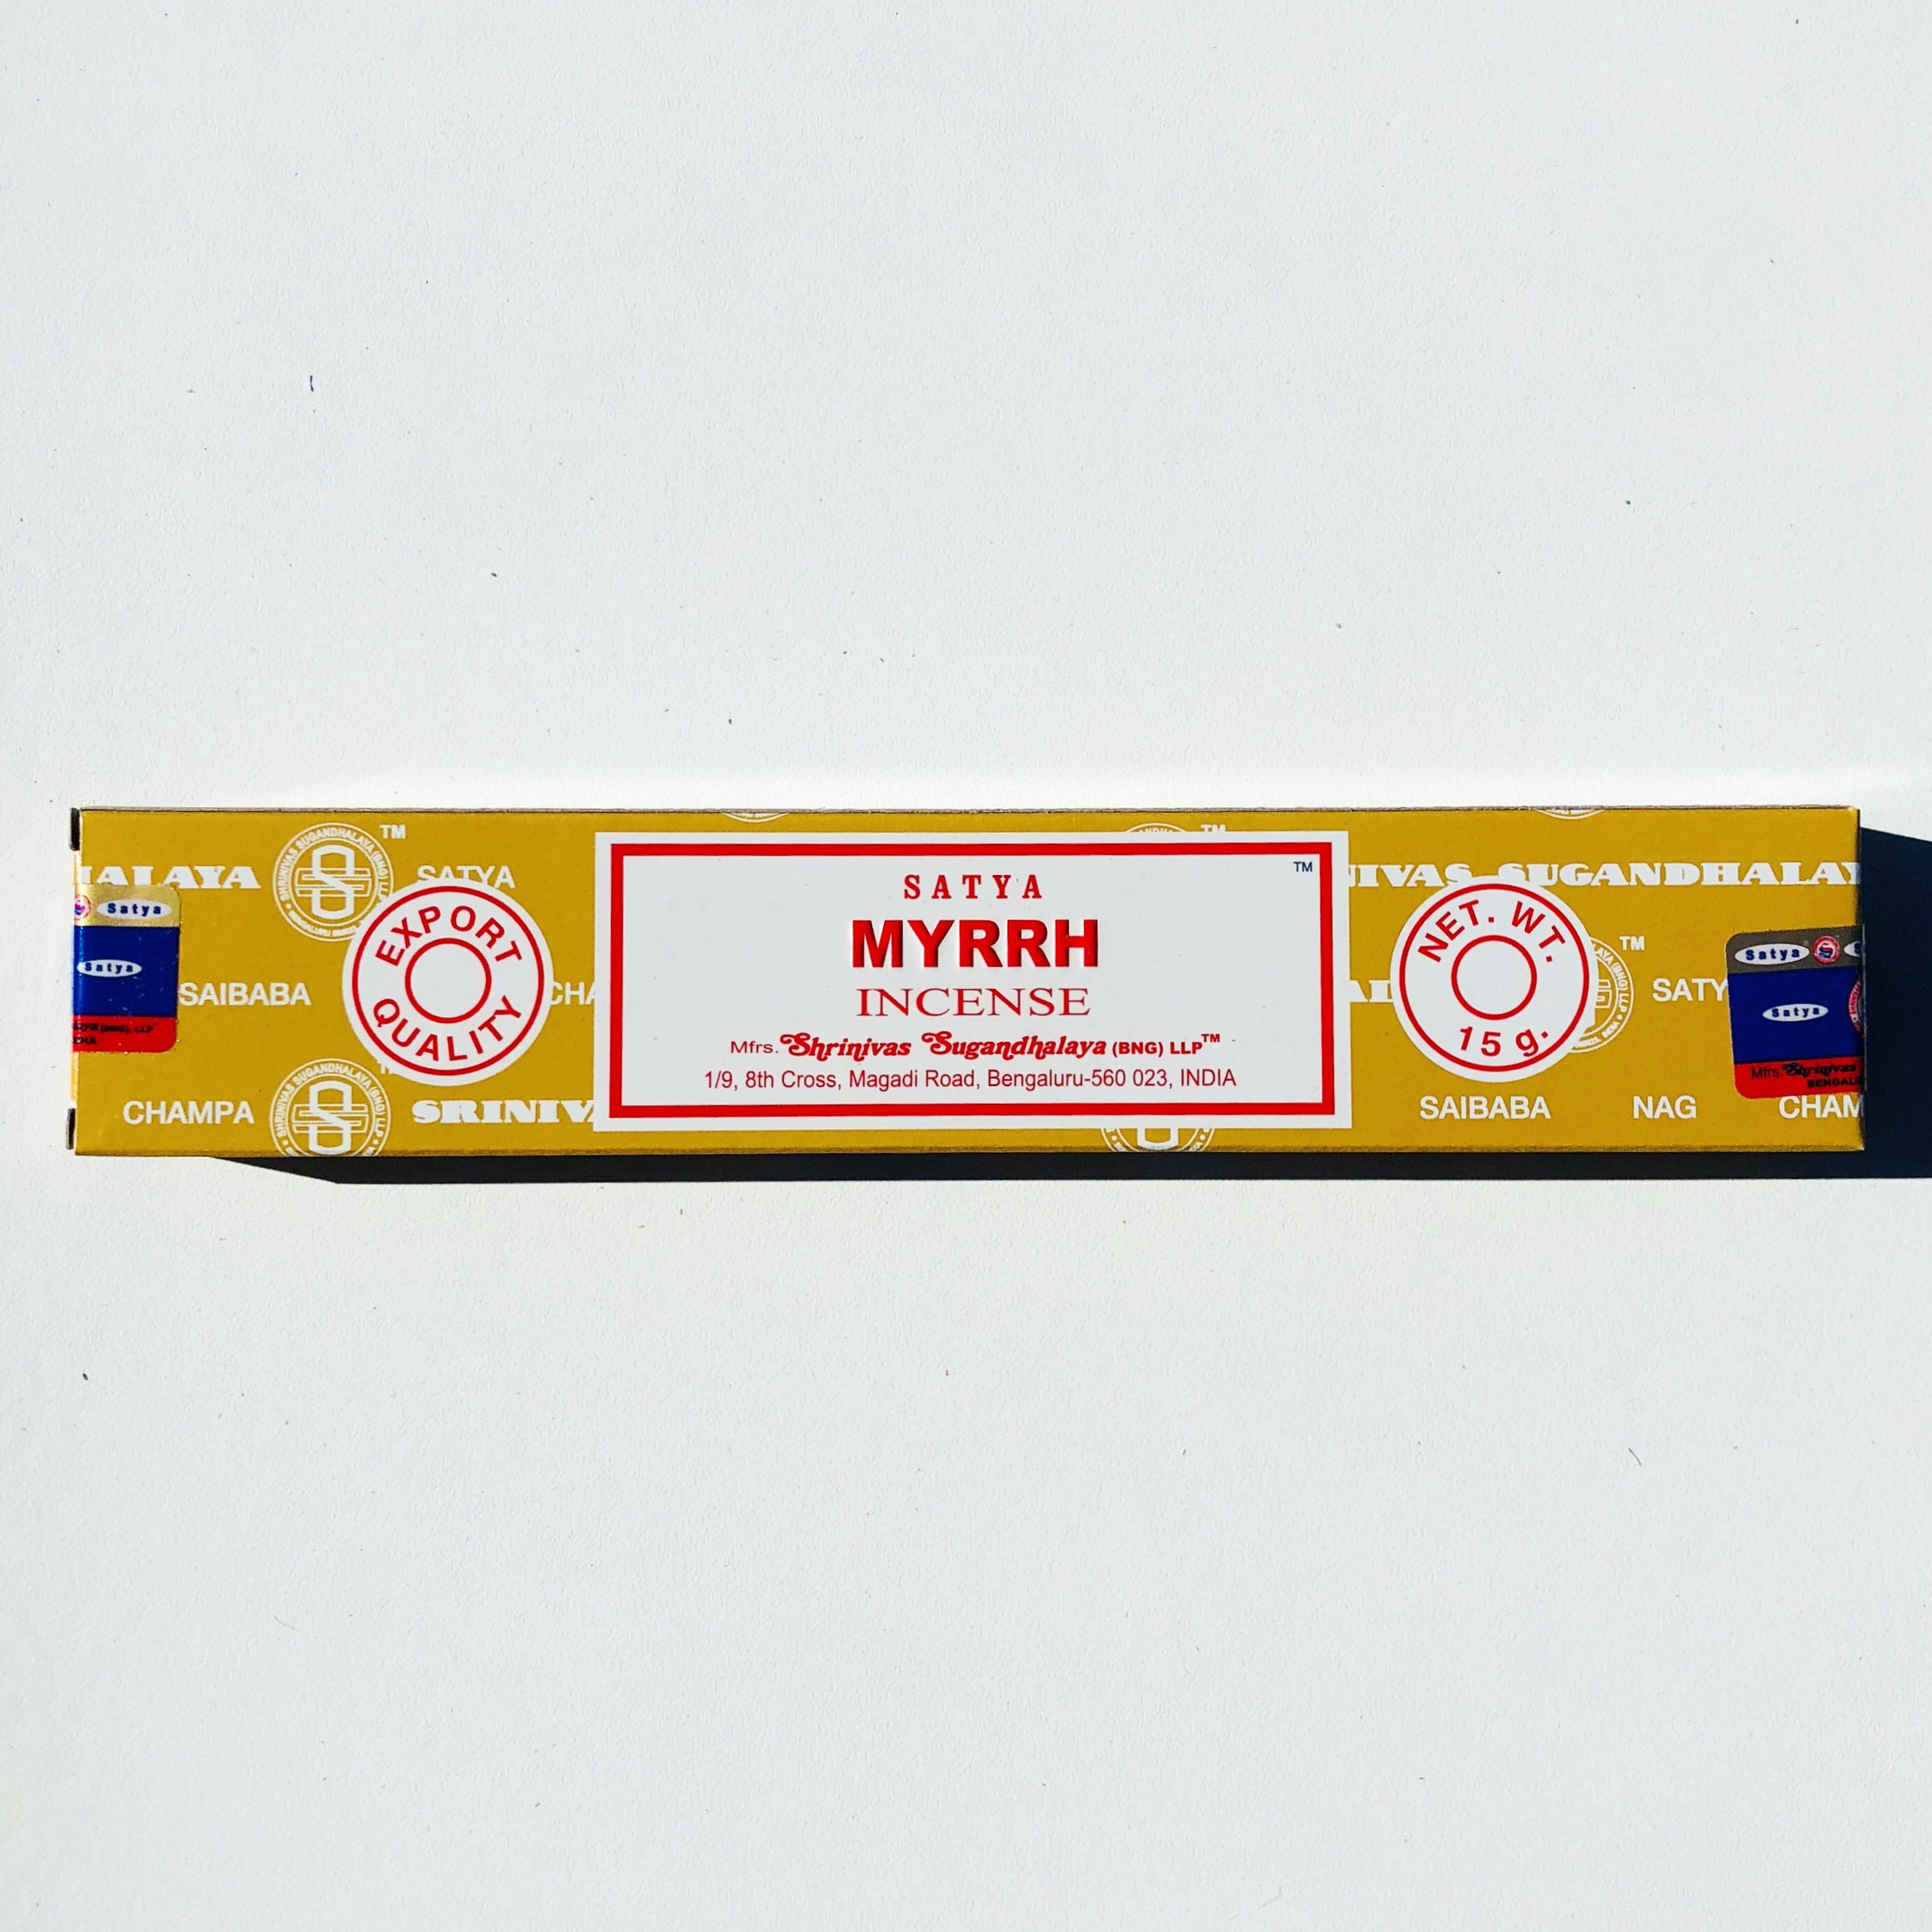 SATYA Incense-Myrth 15mg